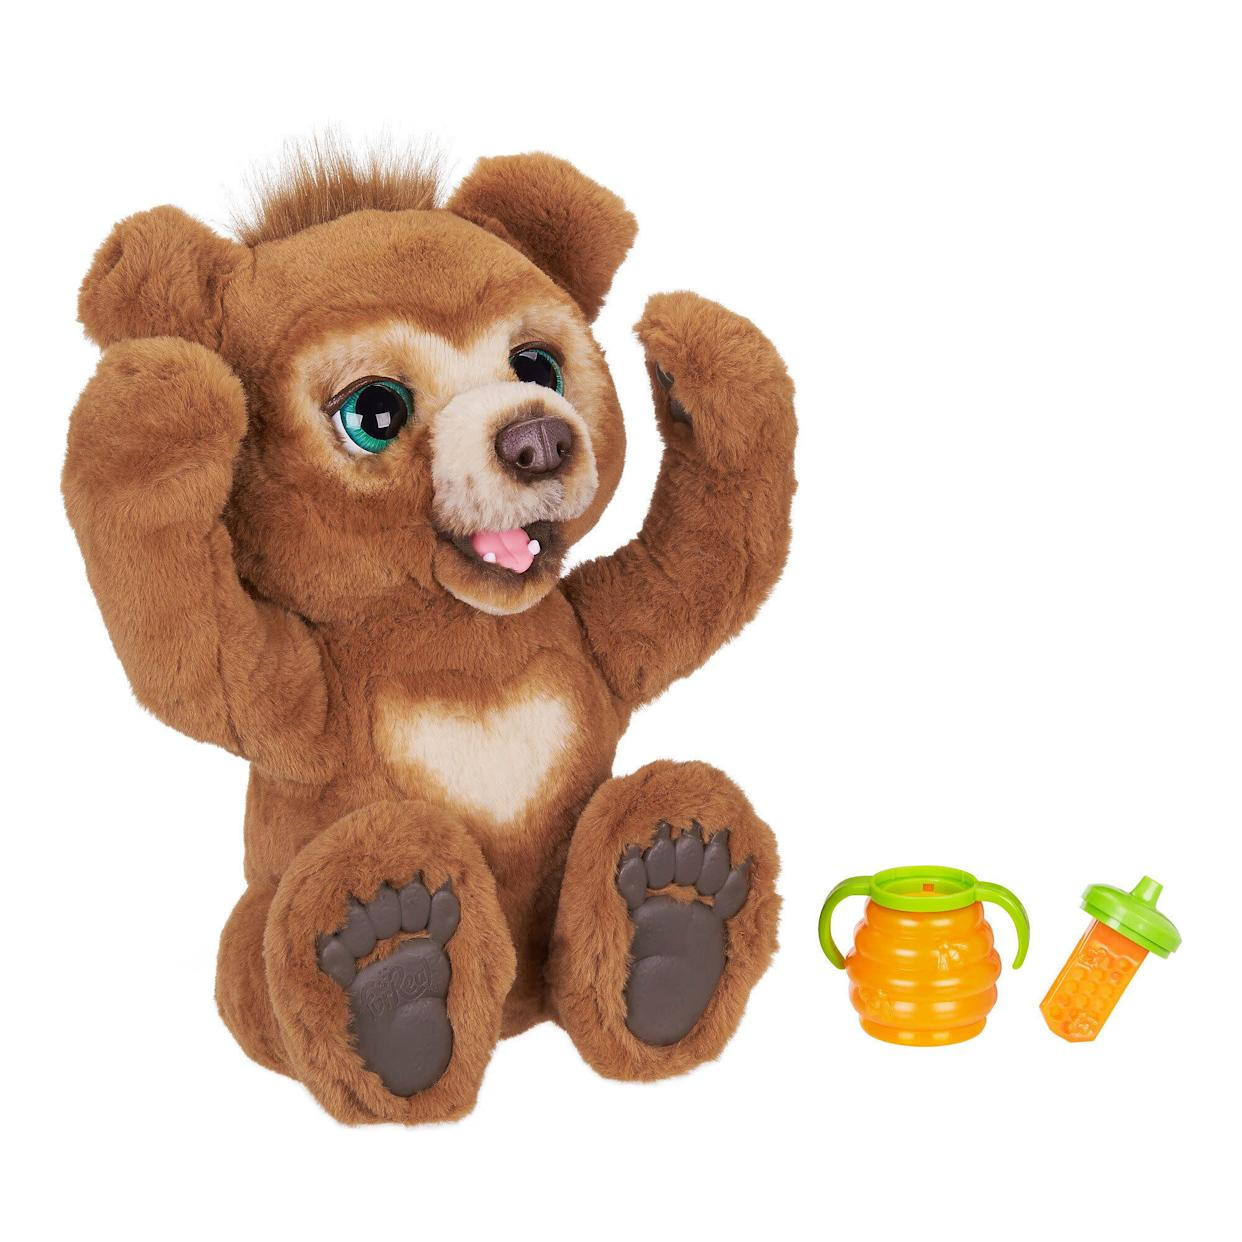 "This delightfully curious, expressive bear cub loves to play with you during the day. In nighttime mode, he makes sleepy sounds and plays soft music. He&rsquo;s a day-to-night best friend! <strong><a href=""https://fave.co/2PD1IKM"" rel=""nofollow noopener"" target=""_blank"" data-ylk=""slk:Find it for $97 at Walmart"" class=""link rapid-noclick-resp"">Find it for $97 at Walmart</a>.</strong>"